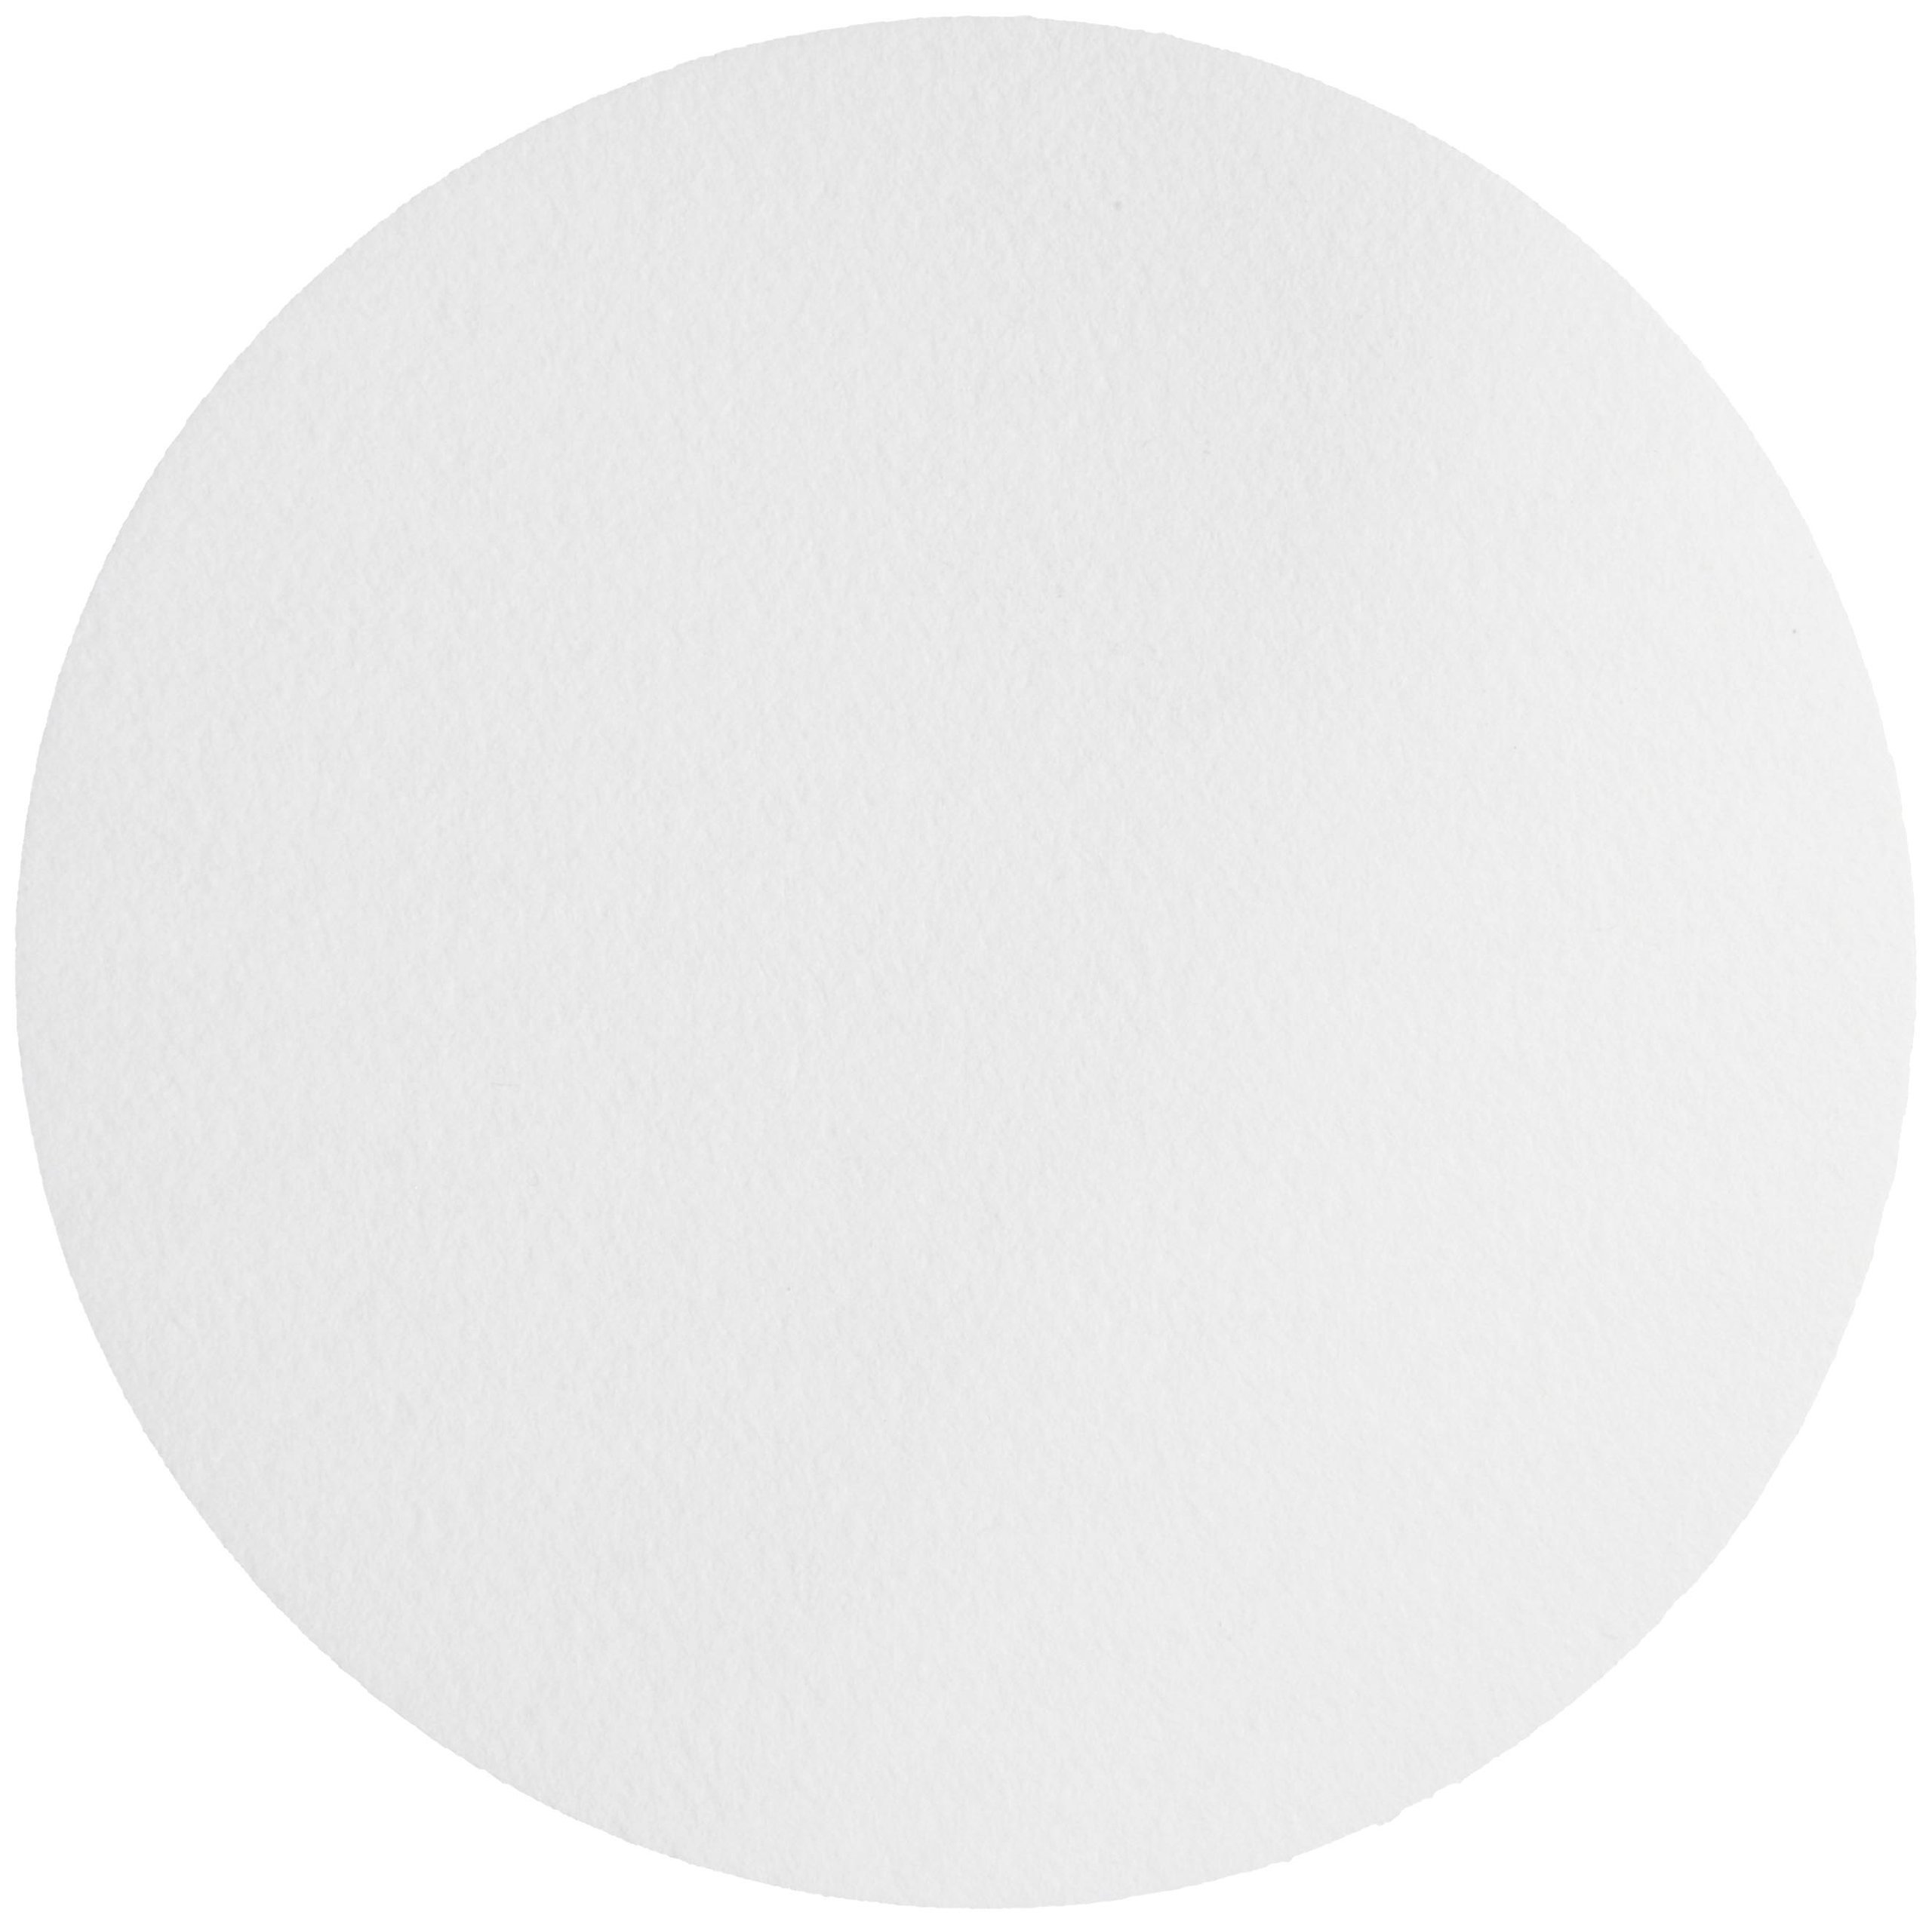 Whatman 1005-240 Qualitative Filter Paper Circles, 2.5 Micron, 94 s/100mL/sq inch Flow Rate, Grade 5, 240mm Diameter (Pack of 100) by Whatman